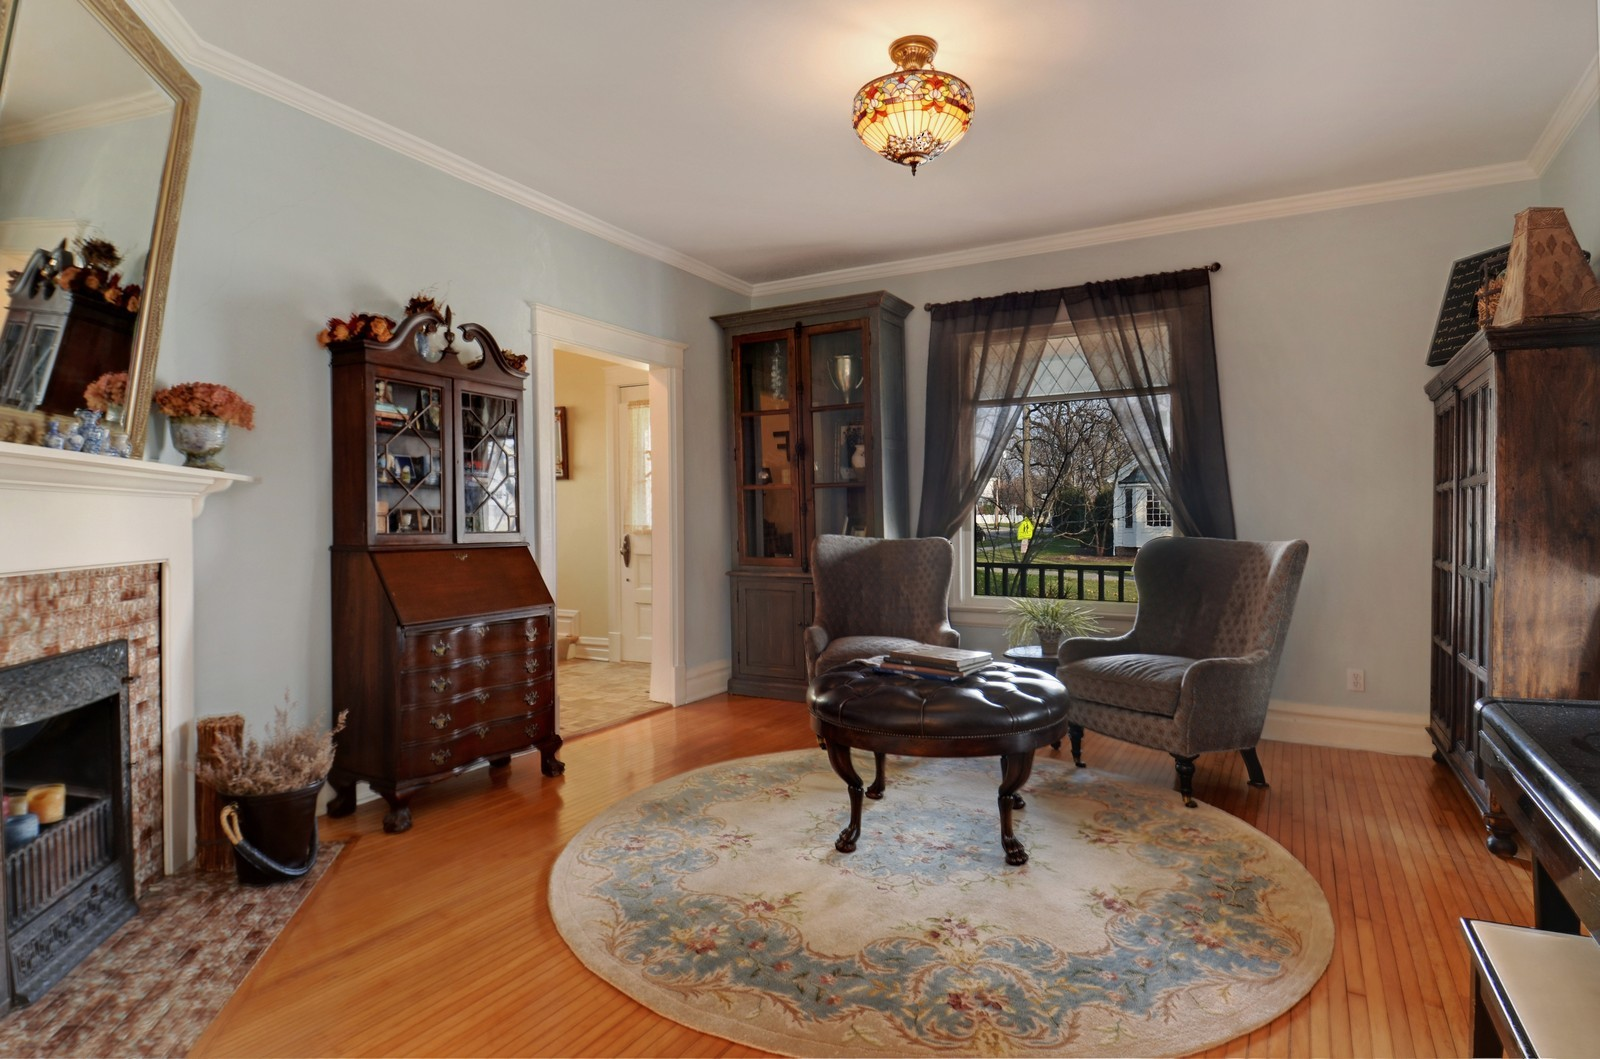 Real Estate Photography - 406 S Grant St, Hinsdale, IL, 60521 - Living Room